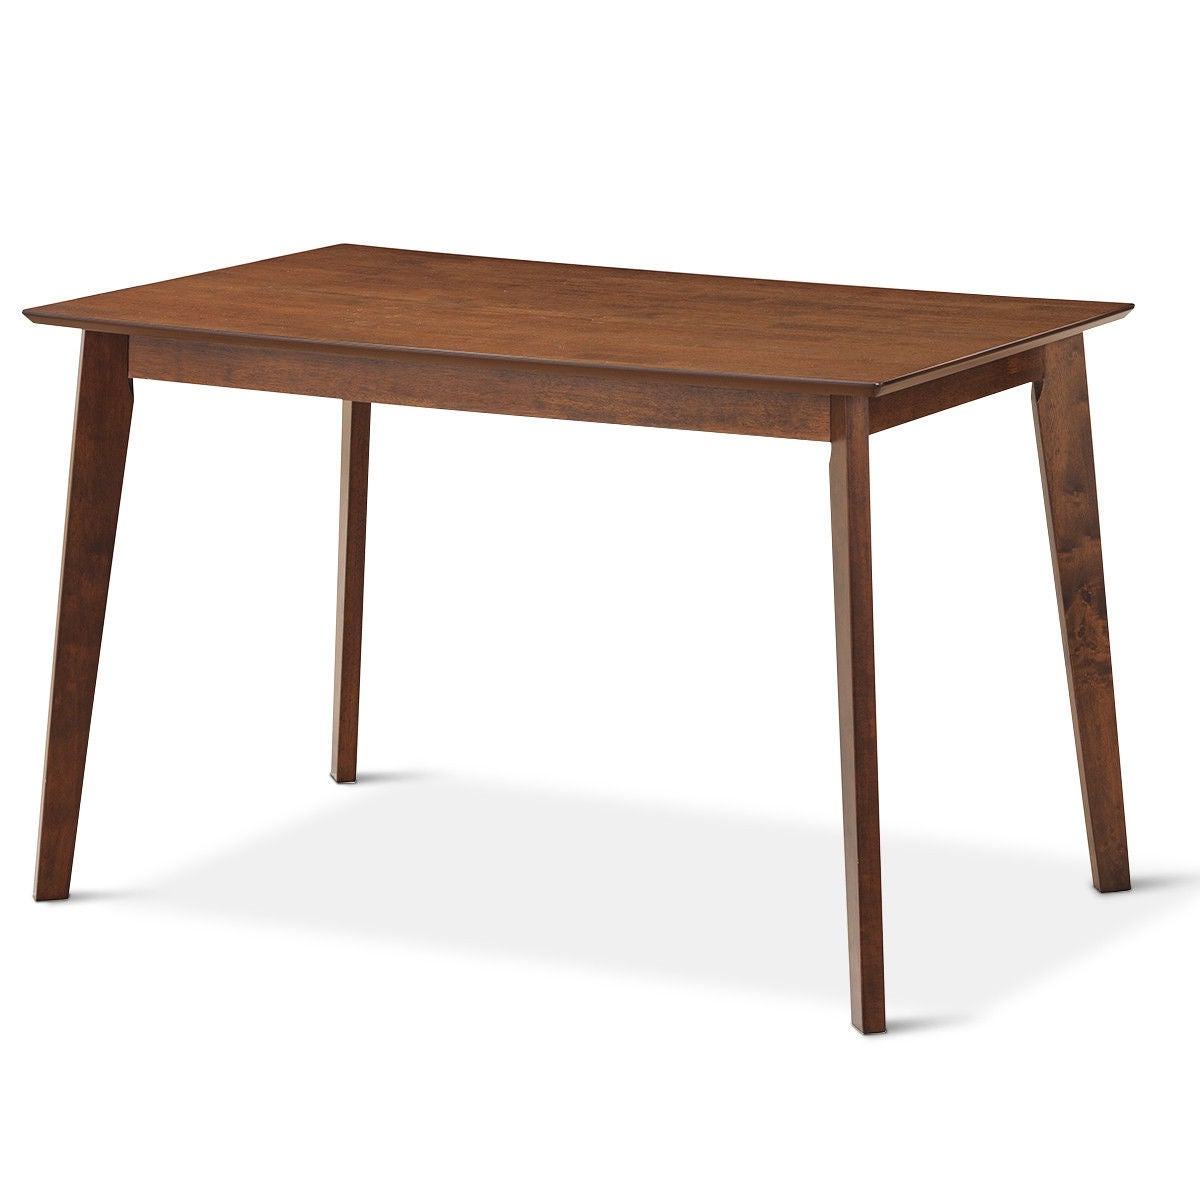 Most Popular Mid Century Rectangular Top Dining Tables With Wood Legs Regarding Gymax Mid Century Modern Dining Table Rectangular Tabletop Dining Room W/ Wood Legs – Walnut (View 17 of 30)